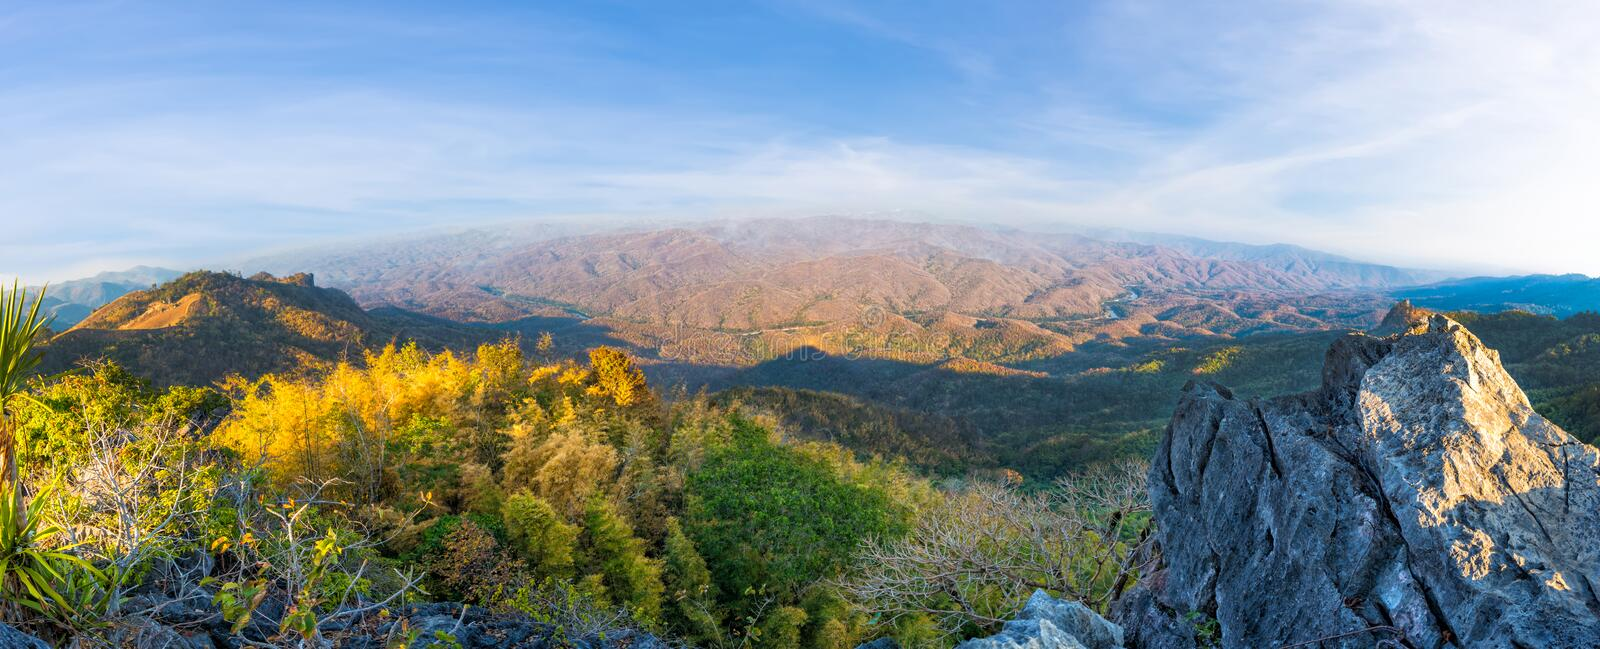 Landscape of high mountain with blue sky royalty free stock photos